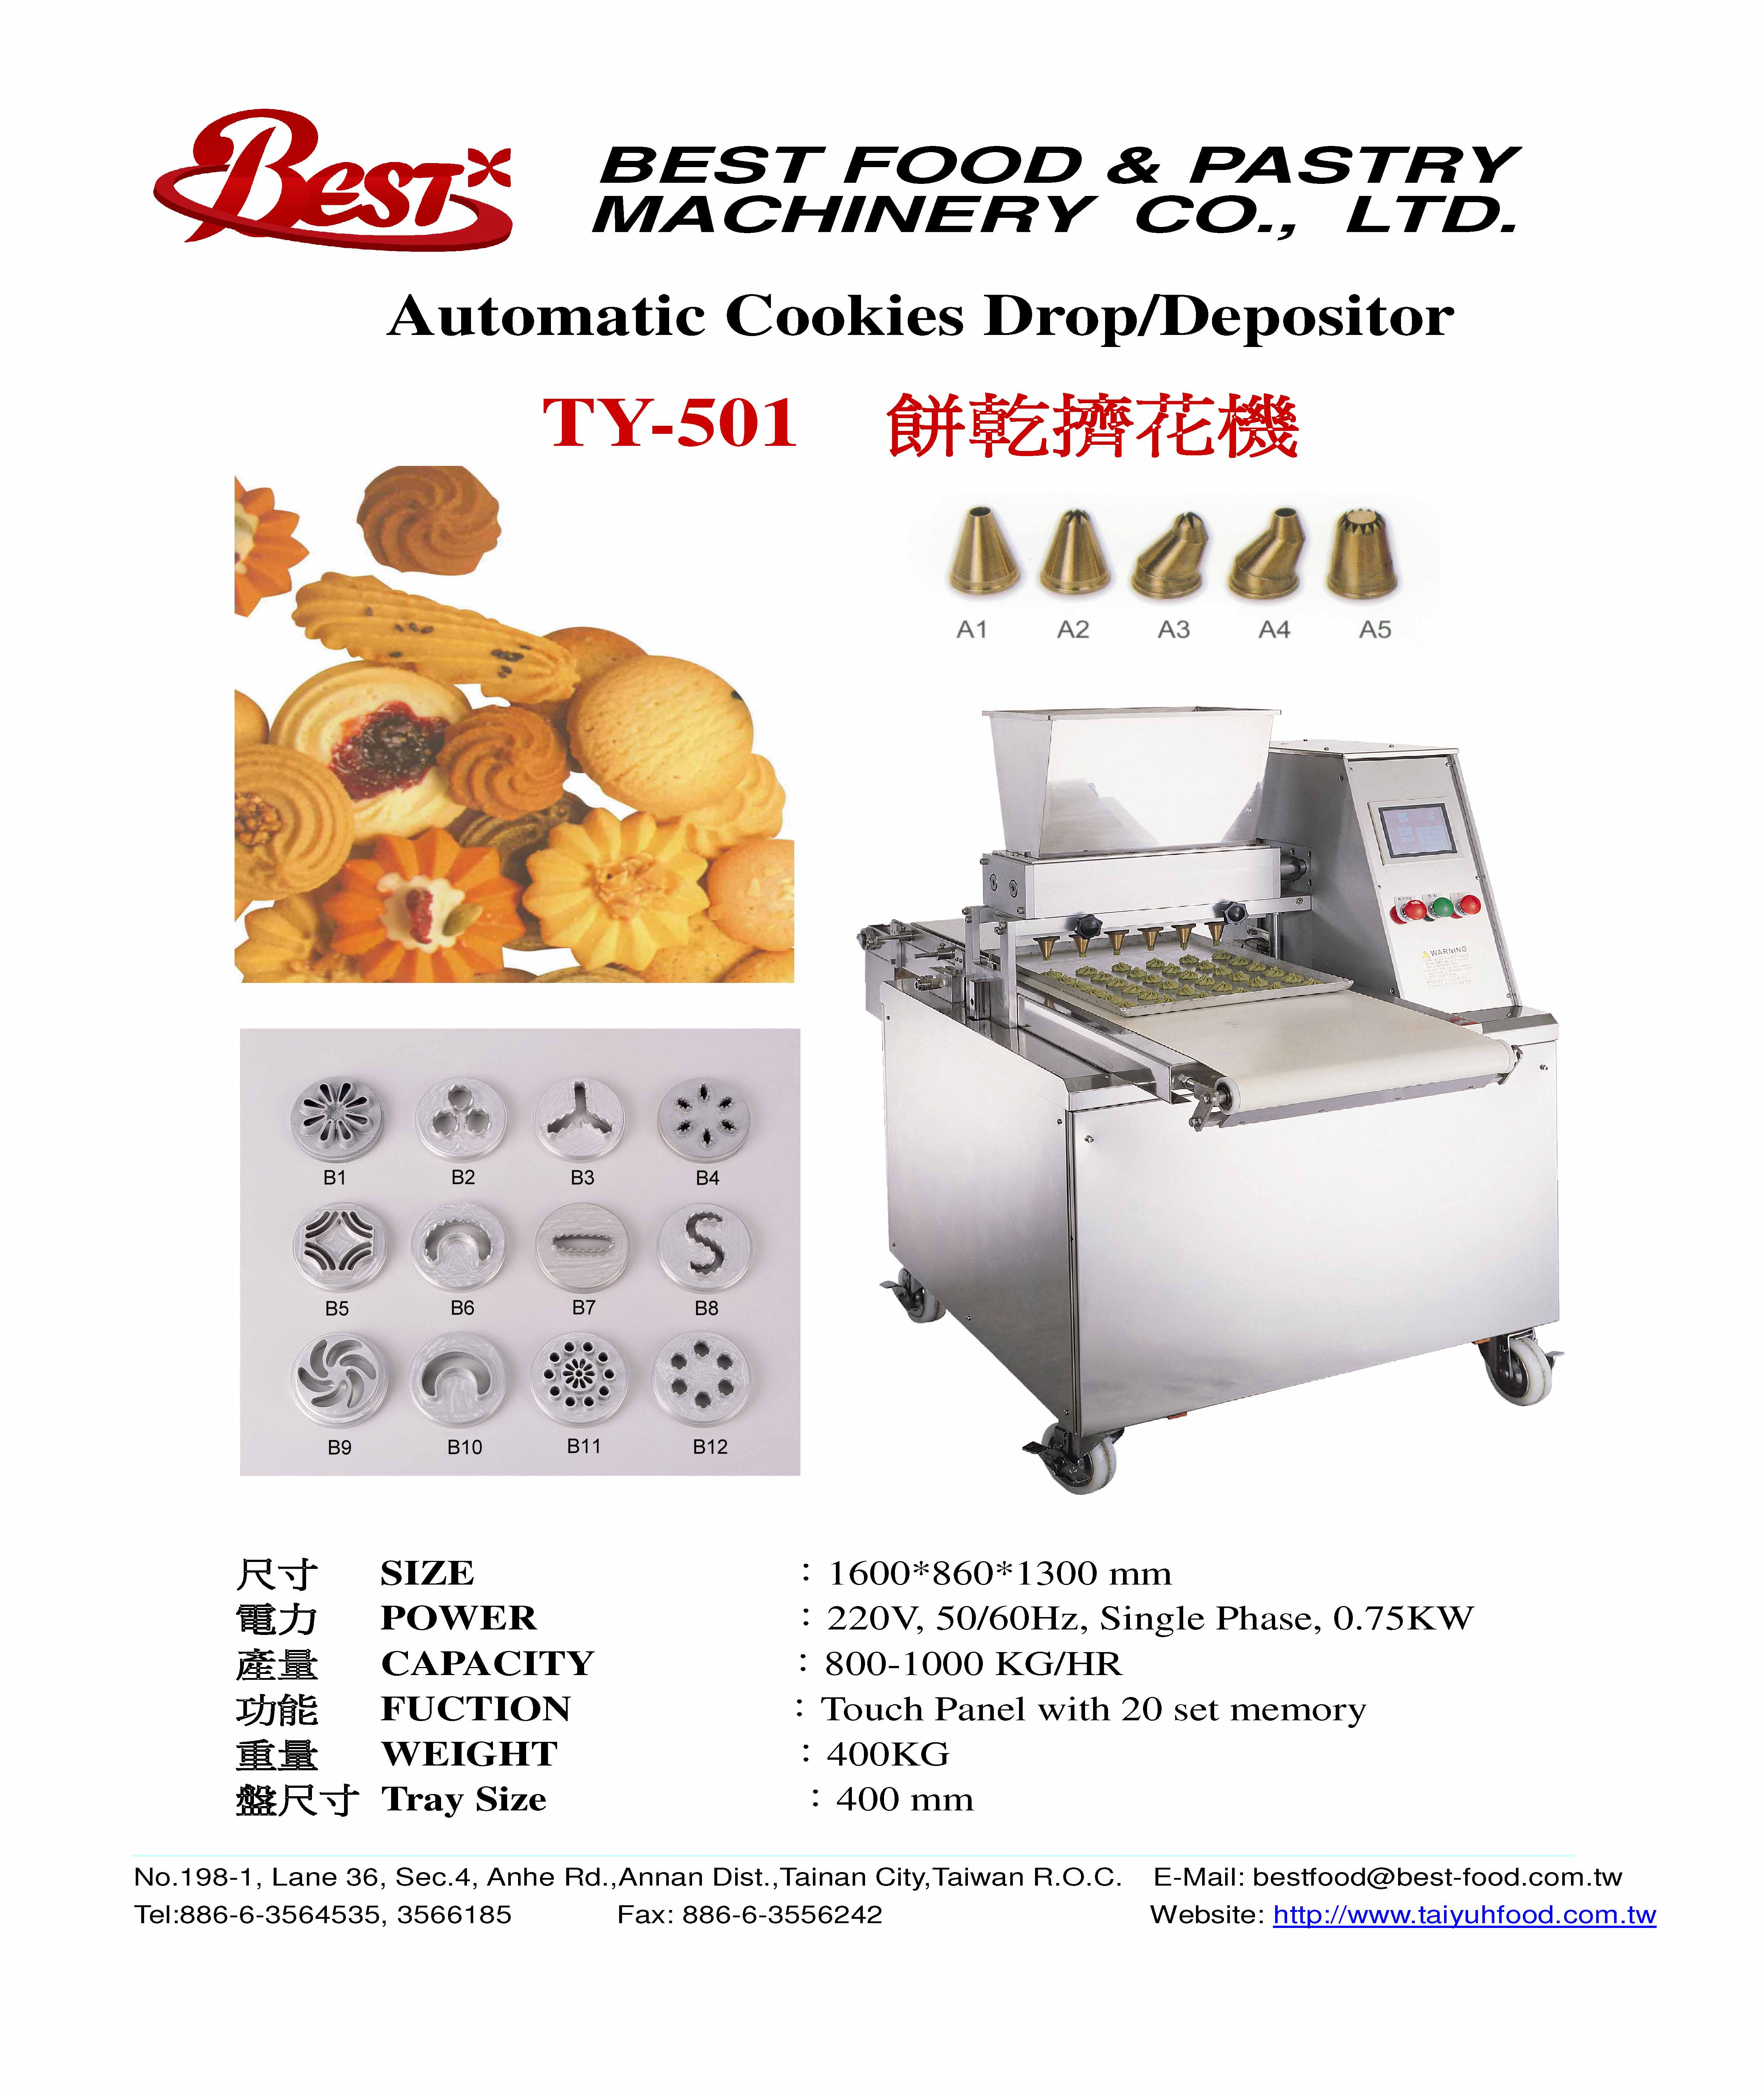 Automatic Cookies Drop/Depositor (TY-502) - Tai Yuh Machine Enterprise Ltd.